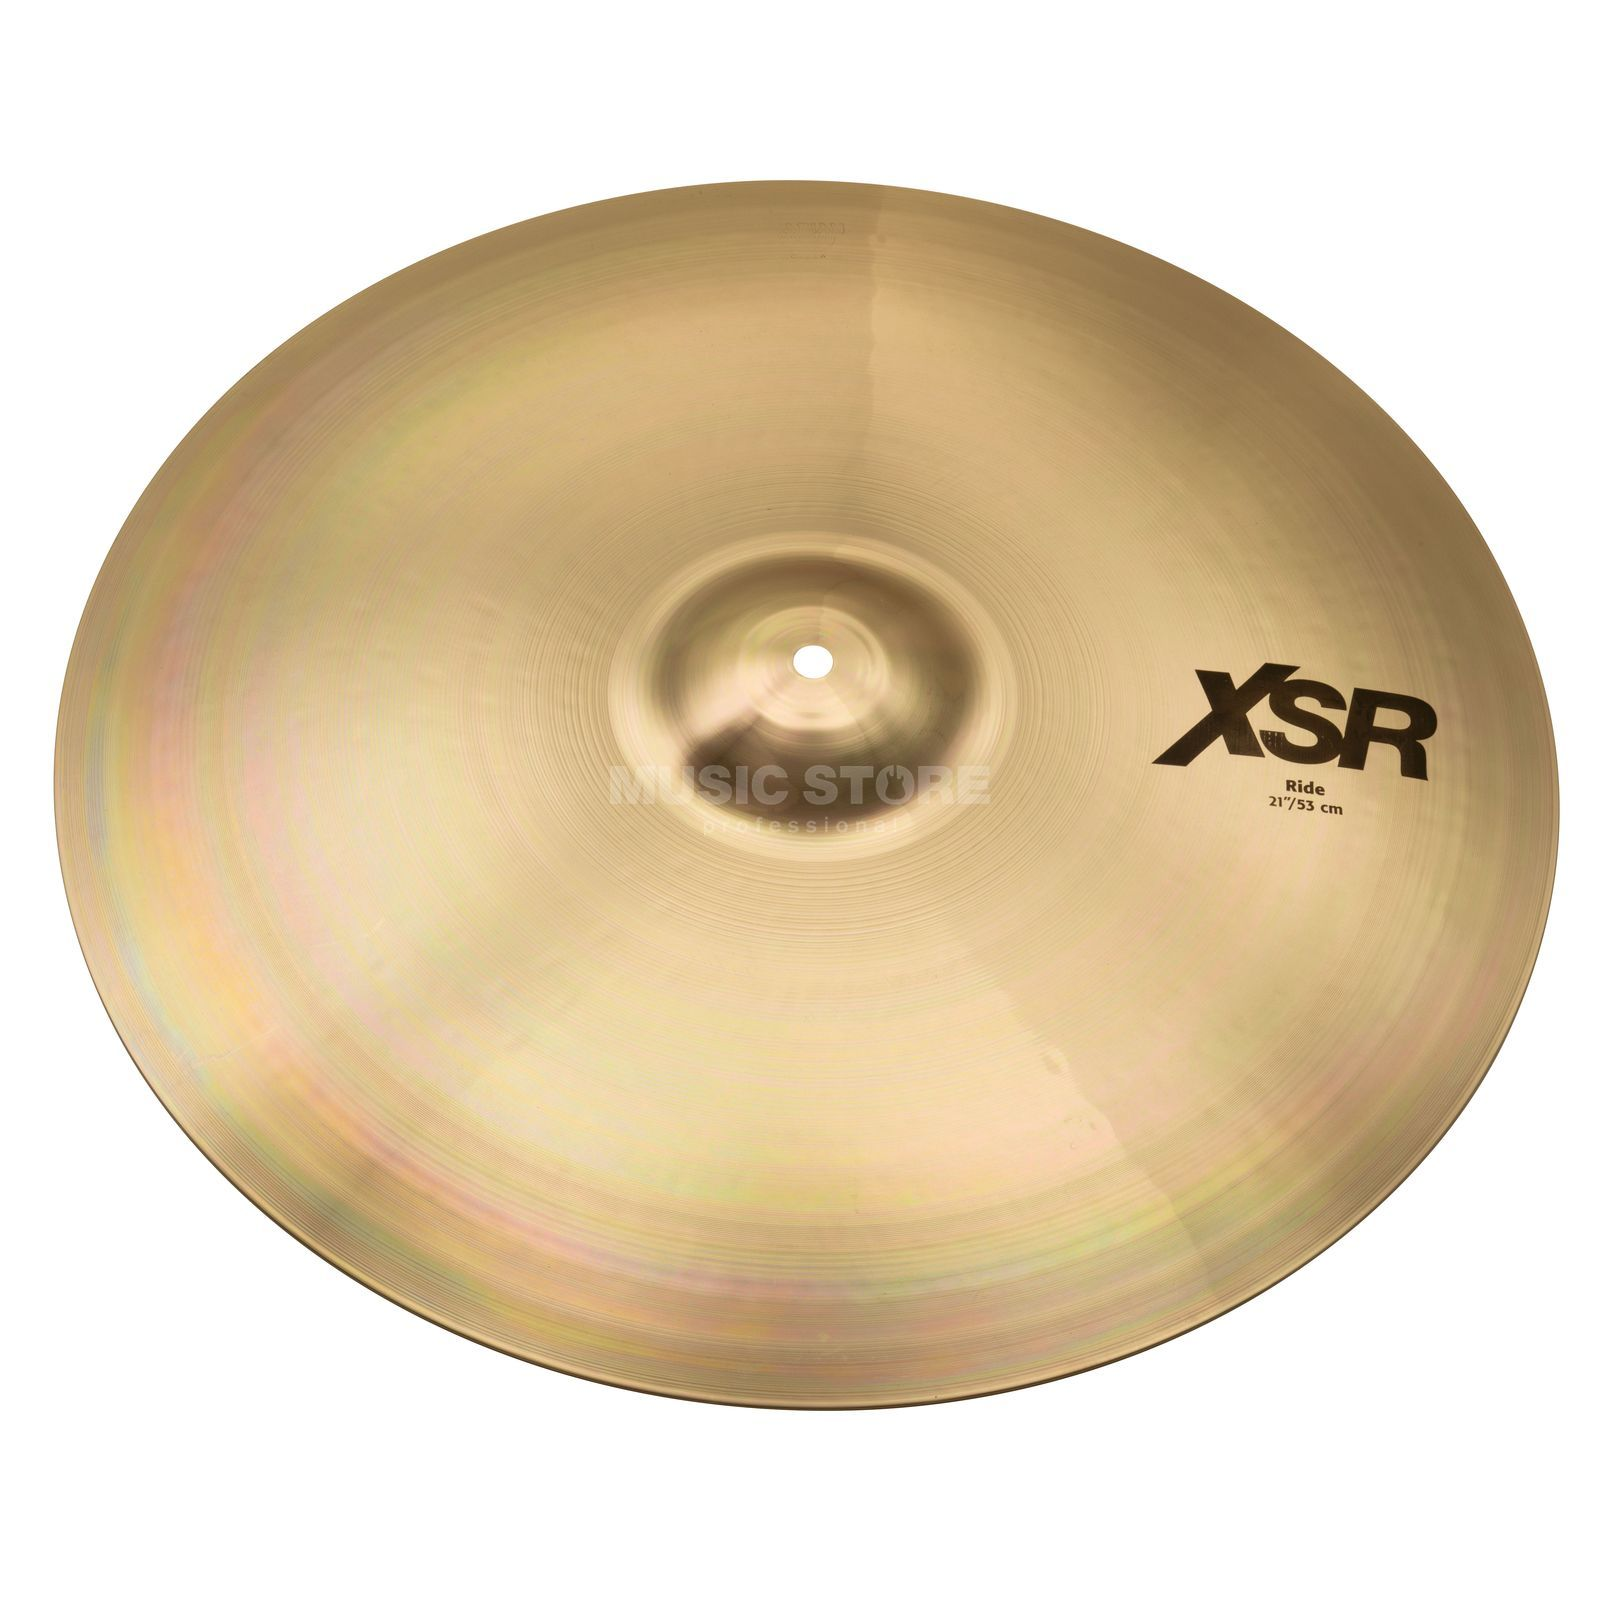 "Sabian XSR Ride 21"" Product Image"